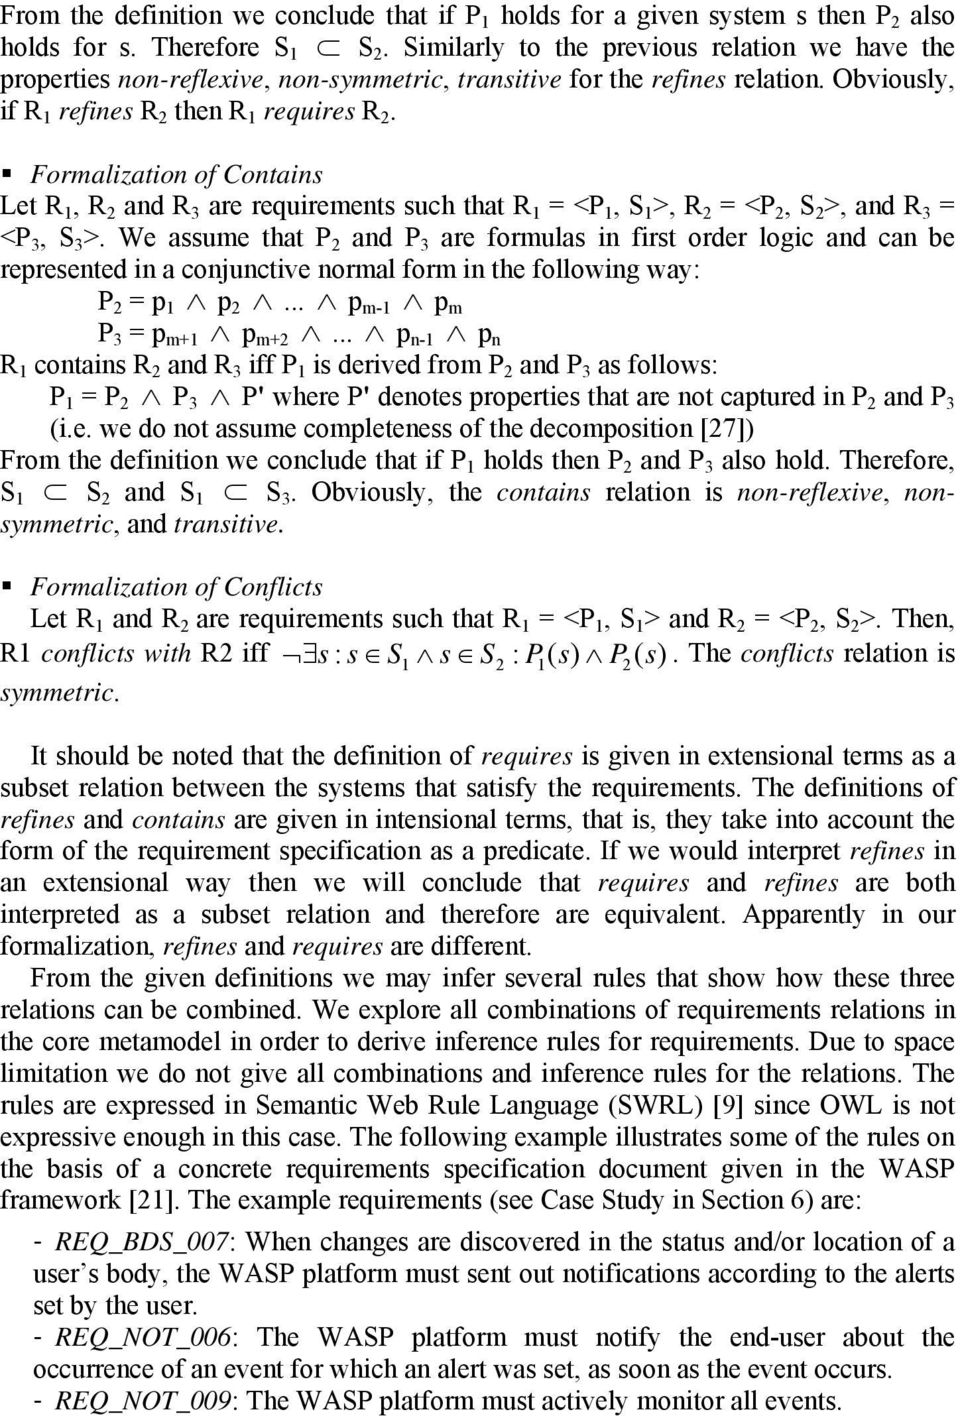 Formalization of Contains Let R 1, R 2 and R 3 are requirements such that R 1 = <P 1, S 1 >, R 2 = <P 2, S 2 >, and R 3 = <P 3, S 3 >.